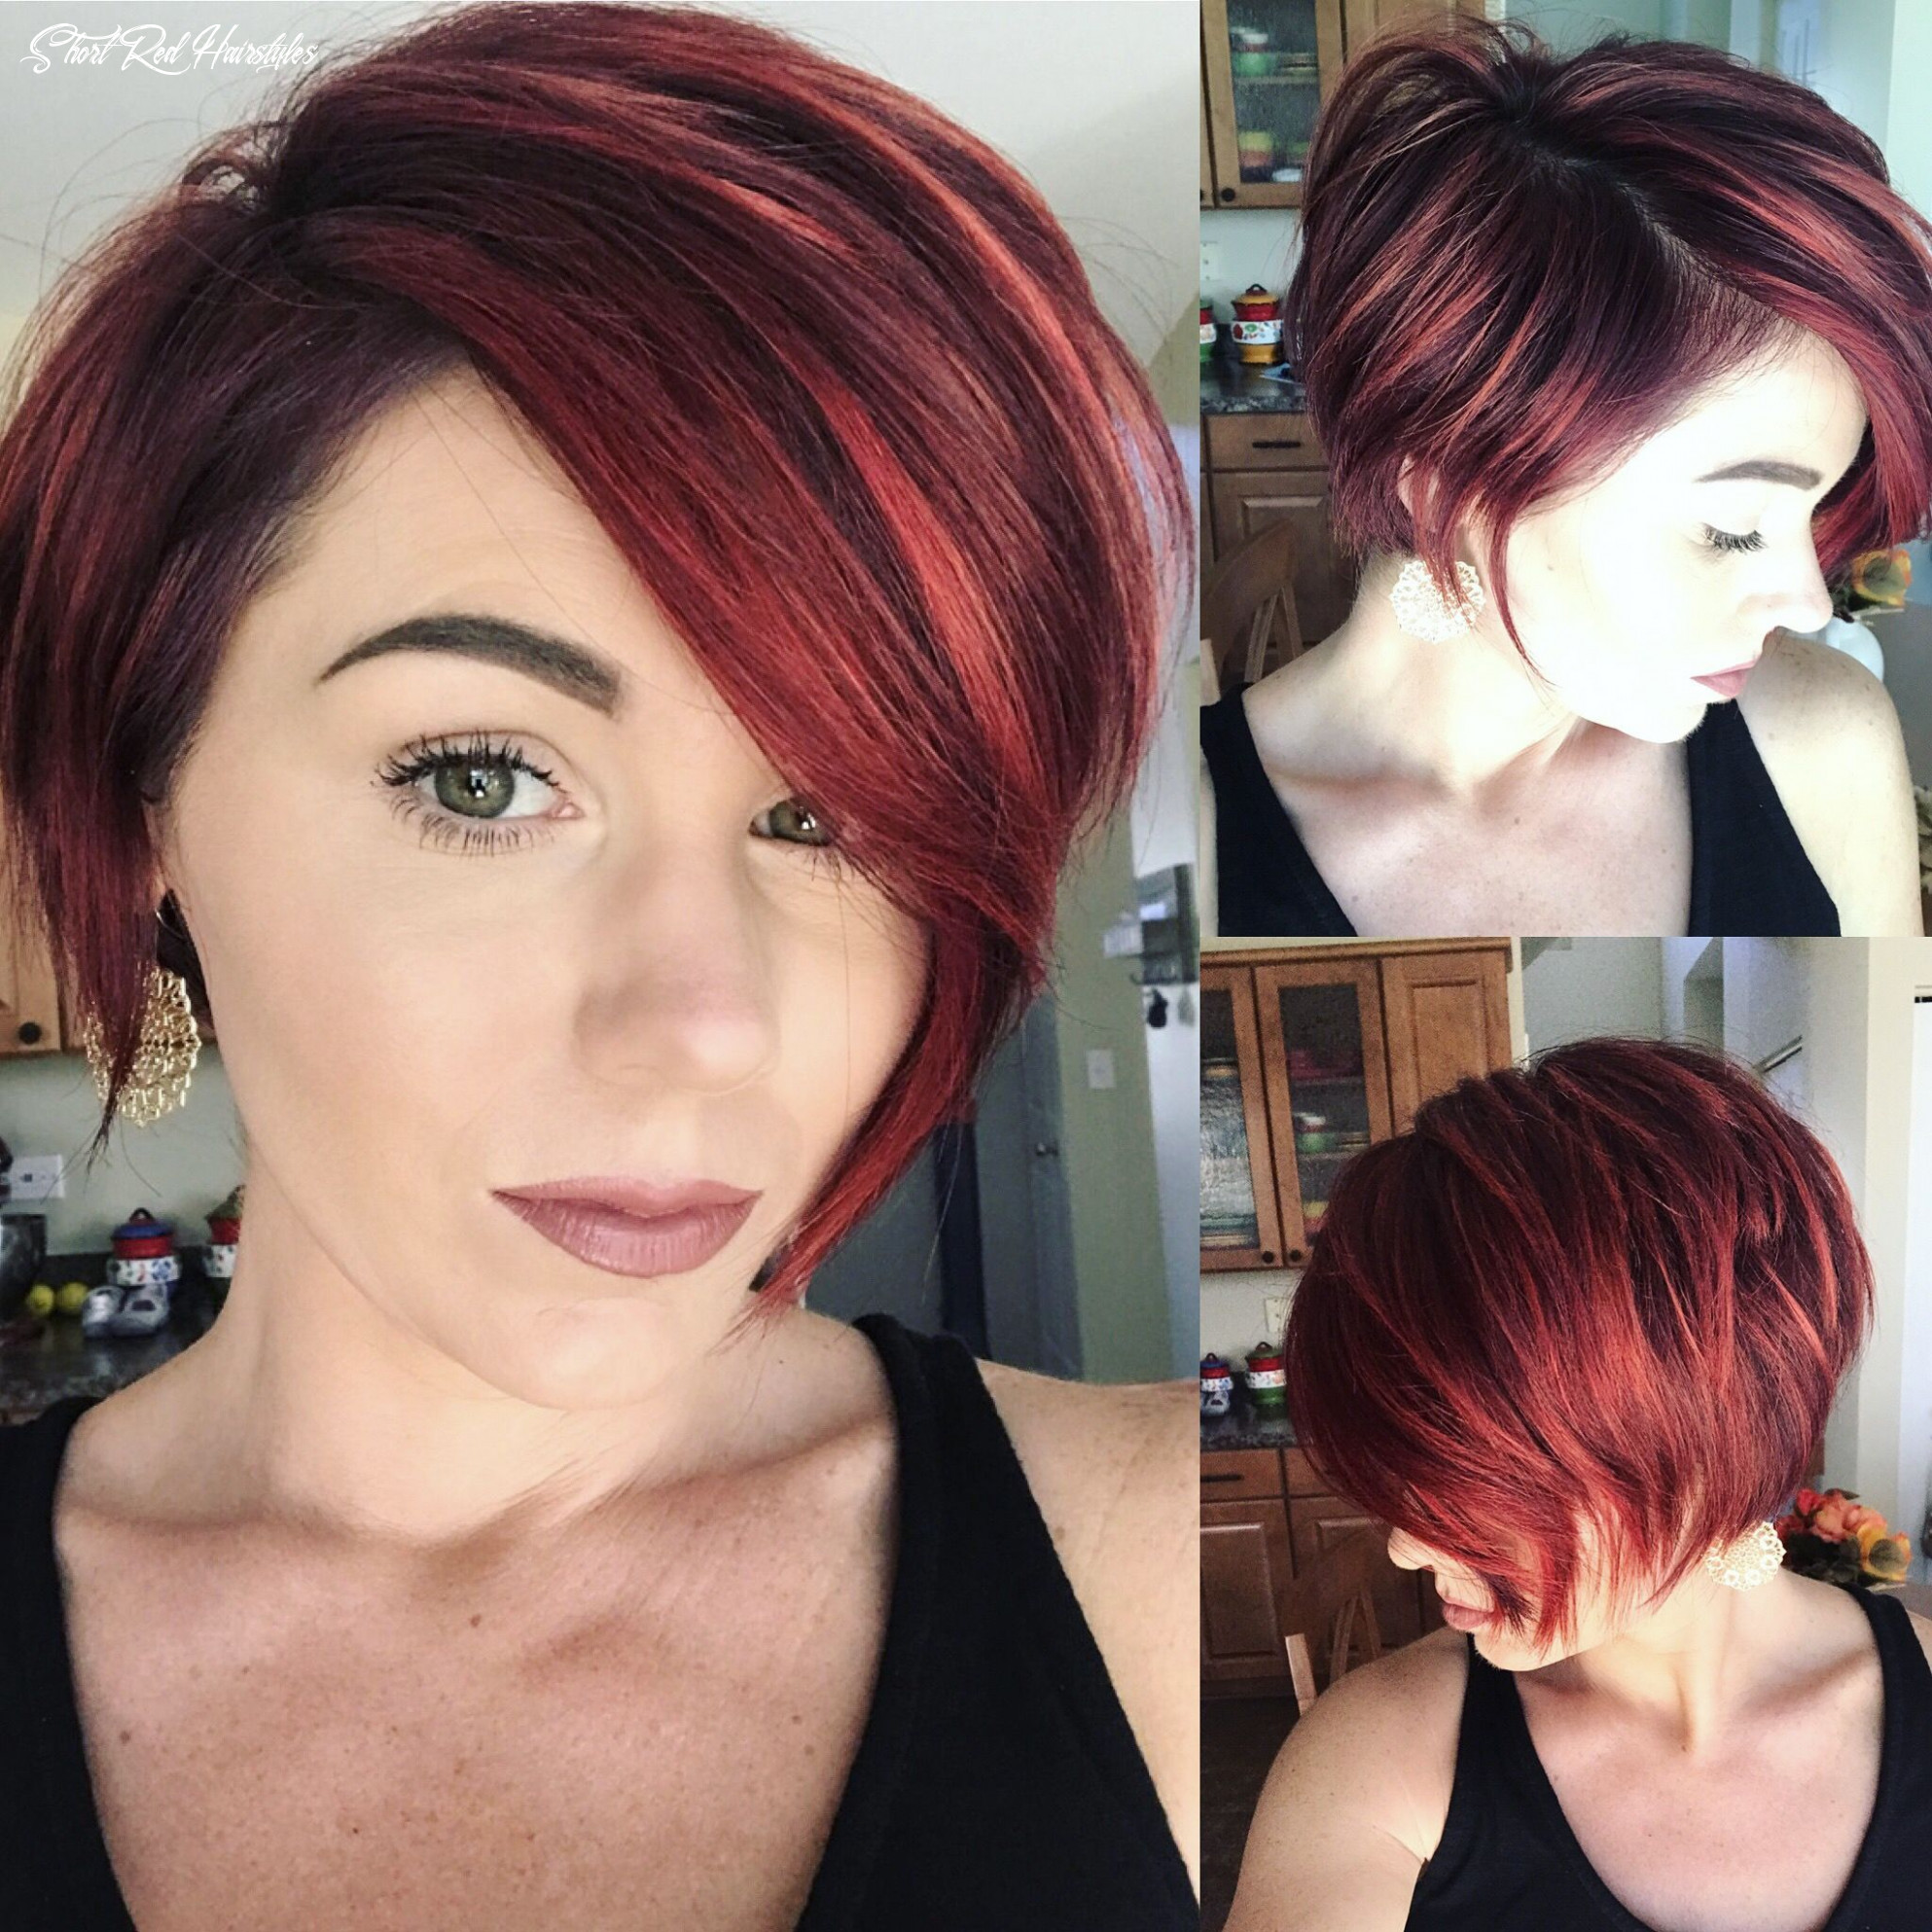 Pin on hairstyles/inspiration short red hairstyles